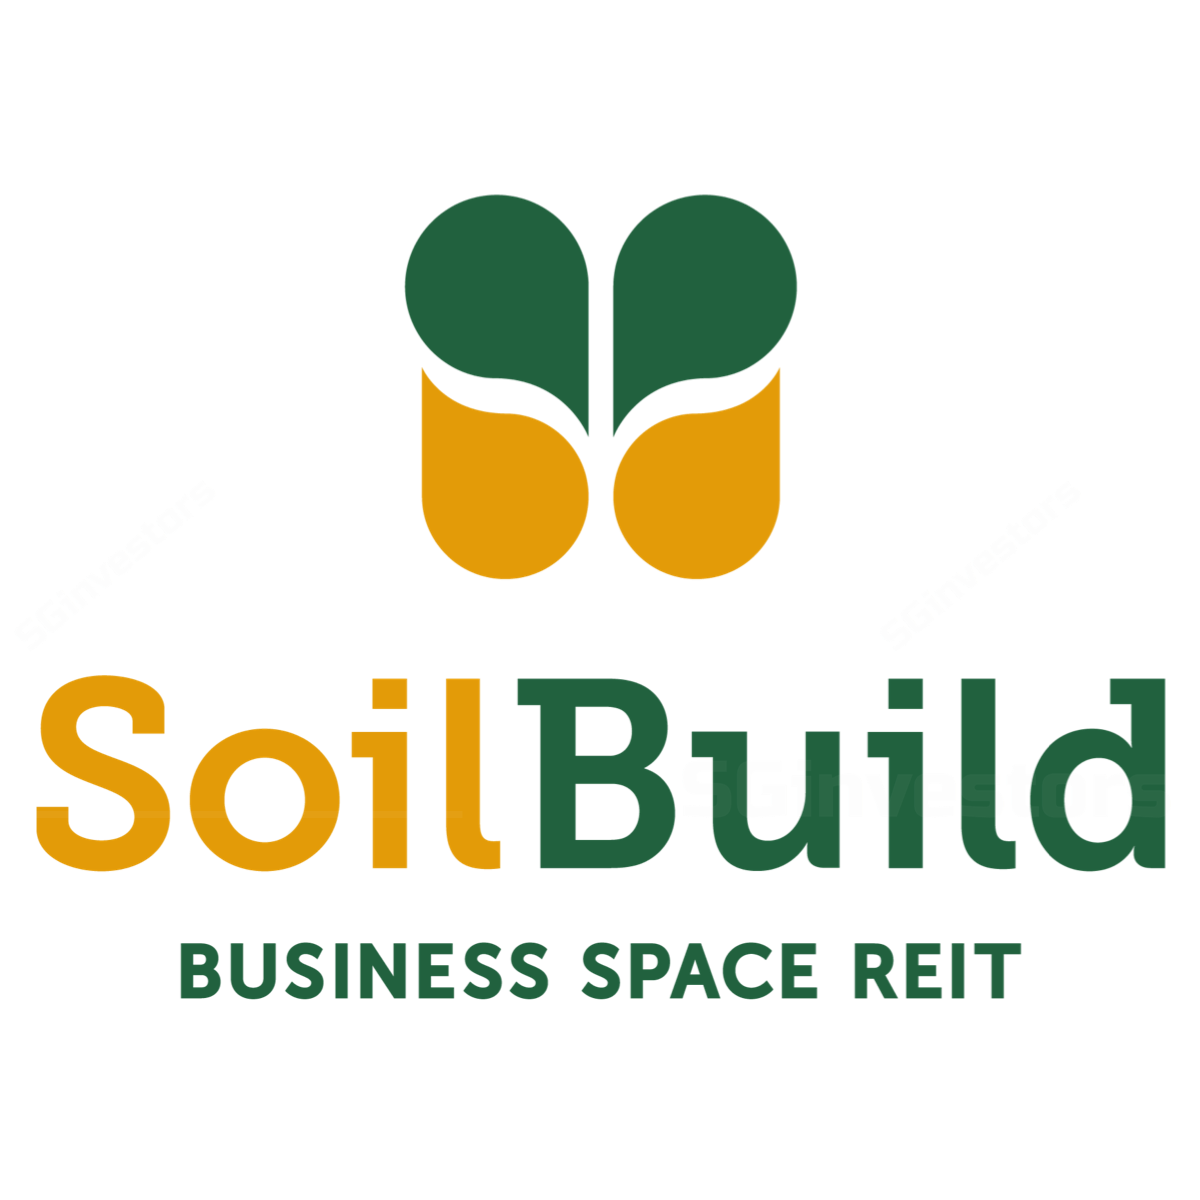 Soilbuild REIT - OCBC Investment 2018-01-02: Proposed Divestment Of KTL Offshore